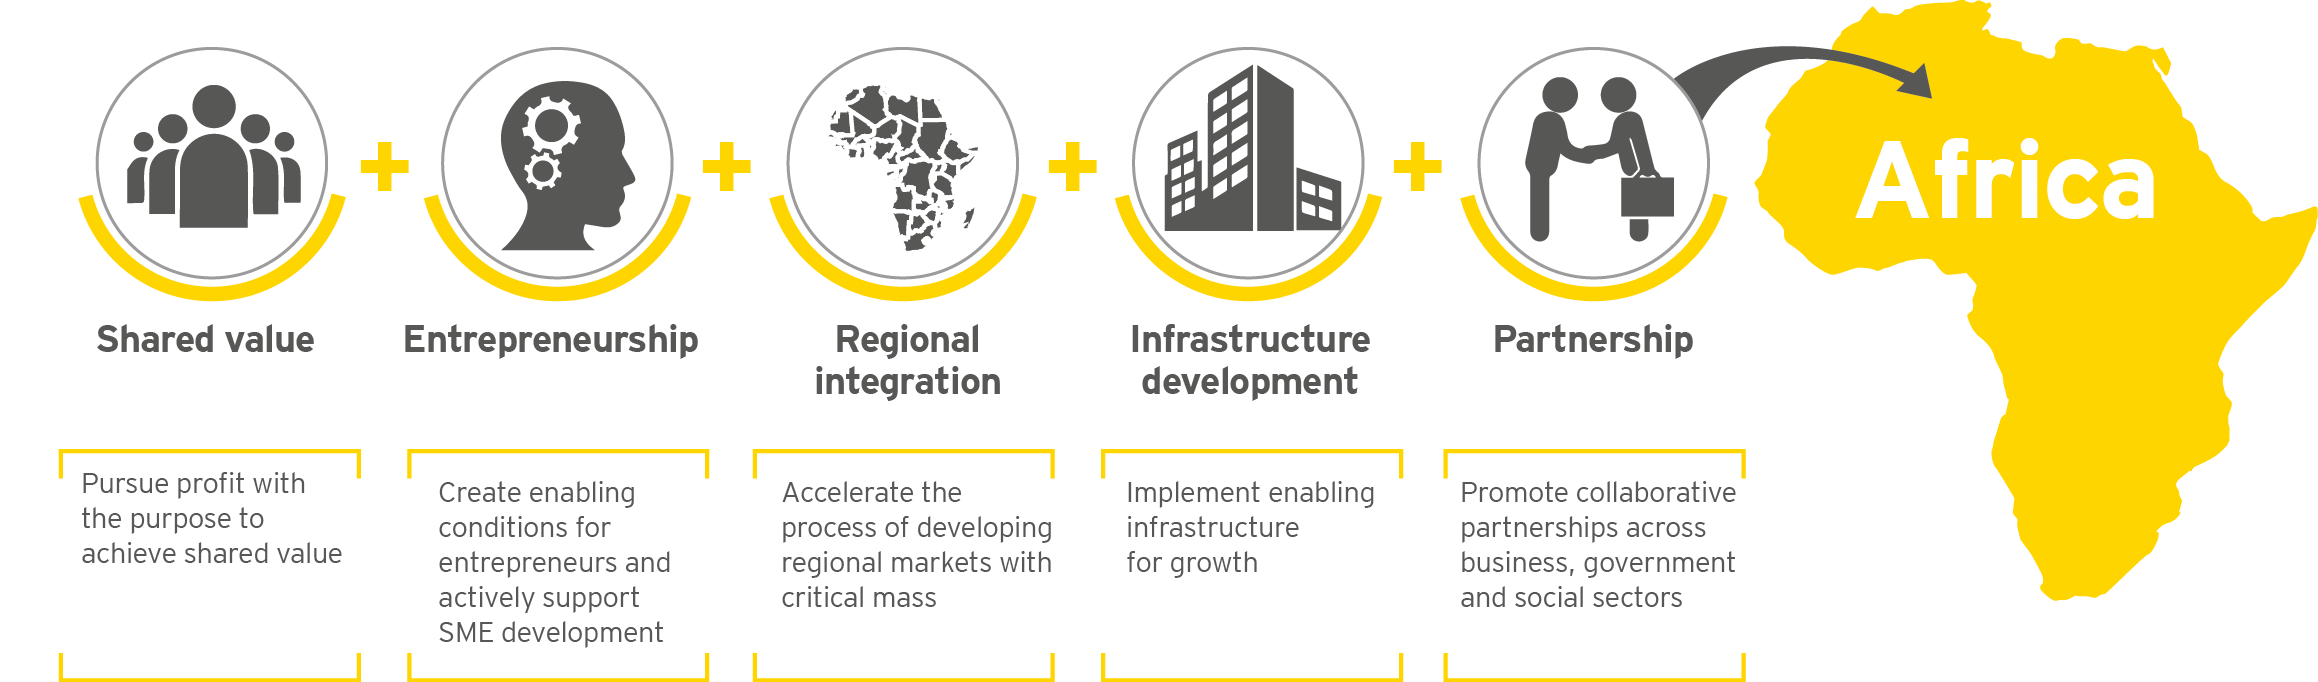 EY - Africa needs both policy reform and resolve